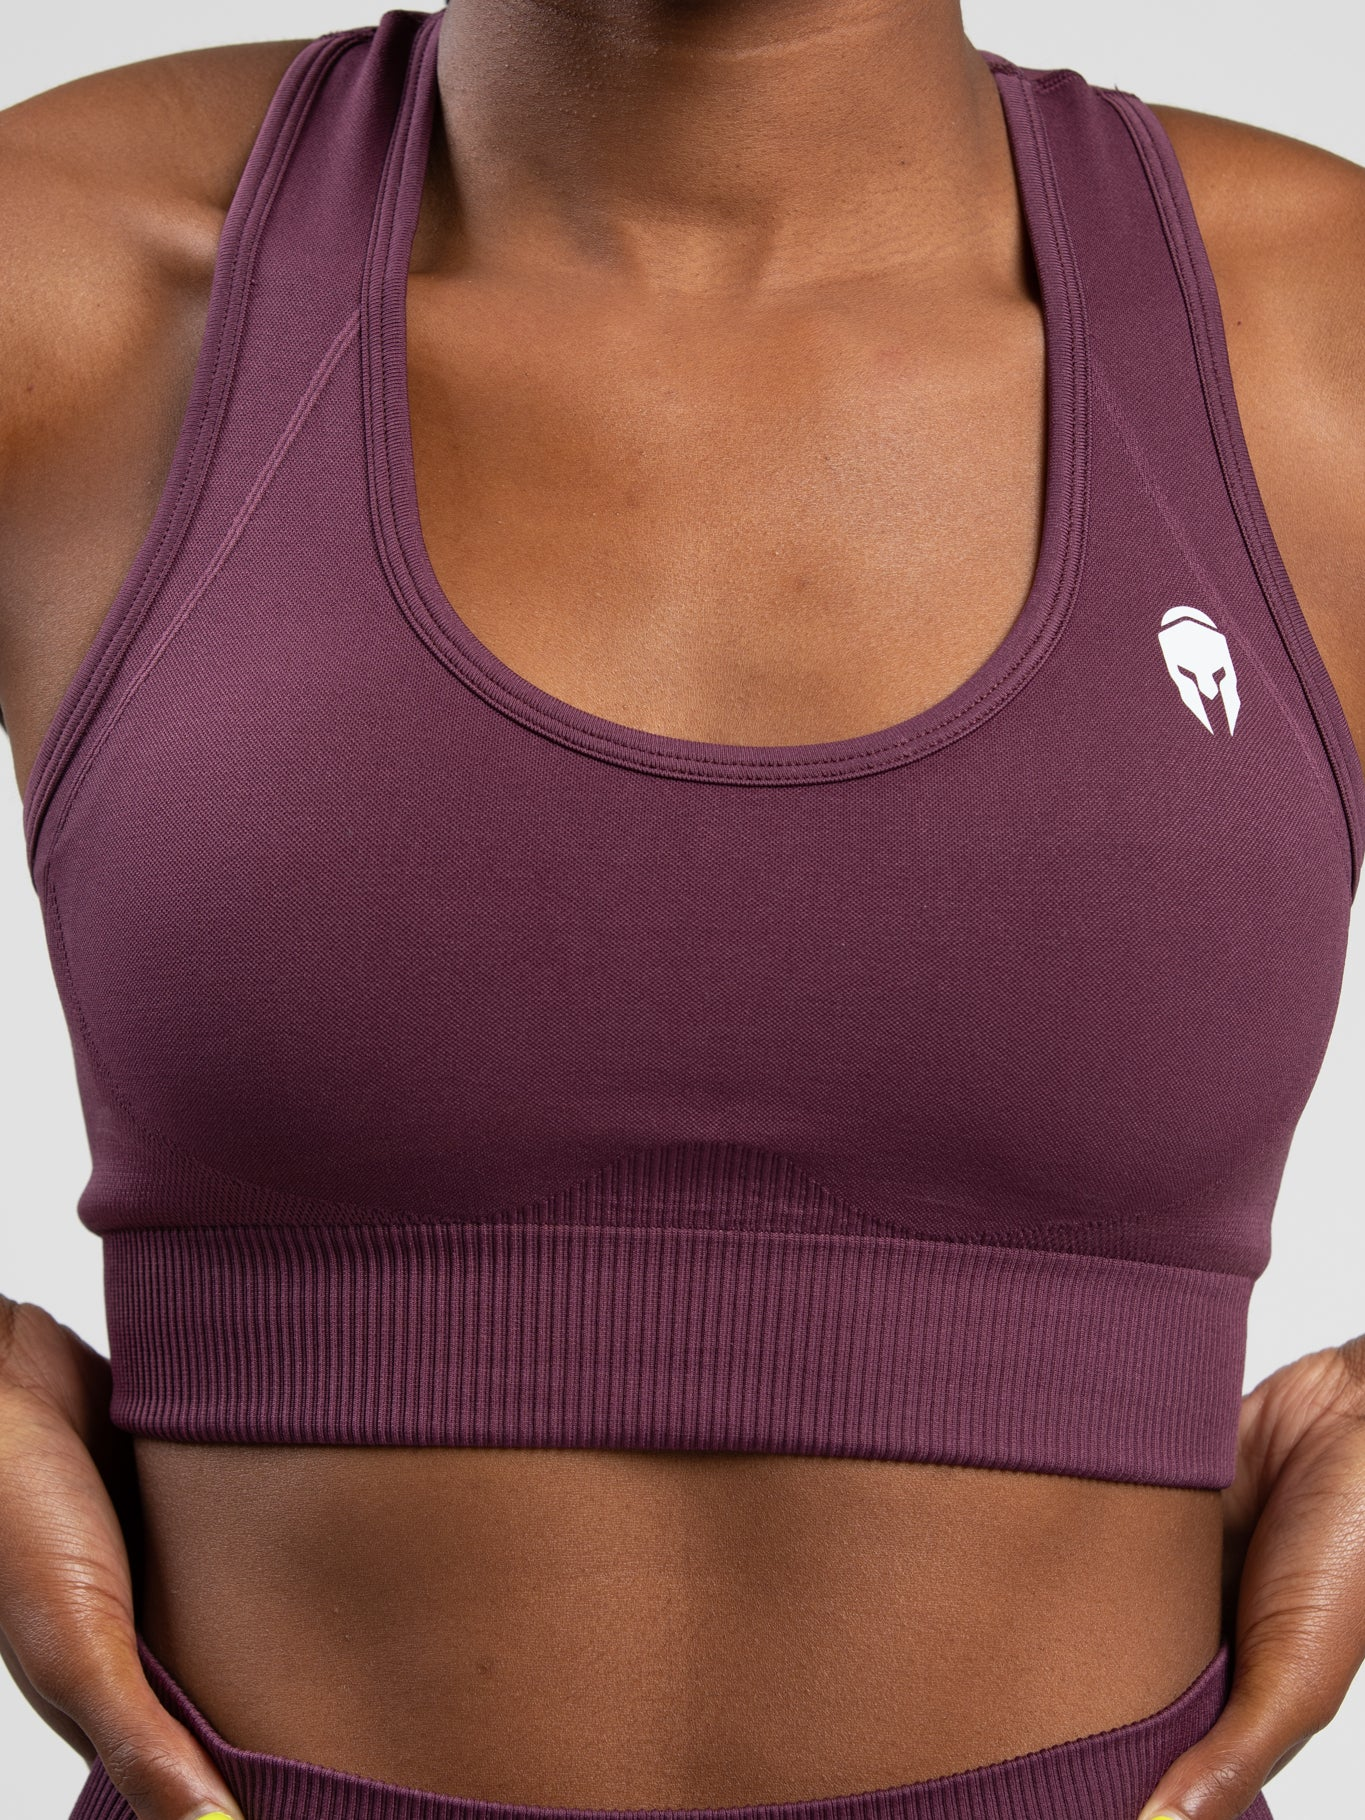 VBRNT Sports Bra - Purple